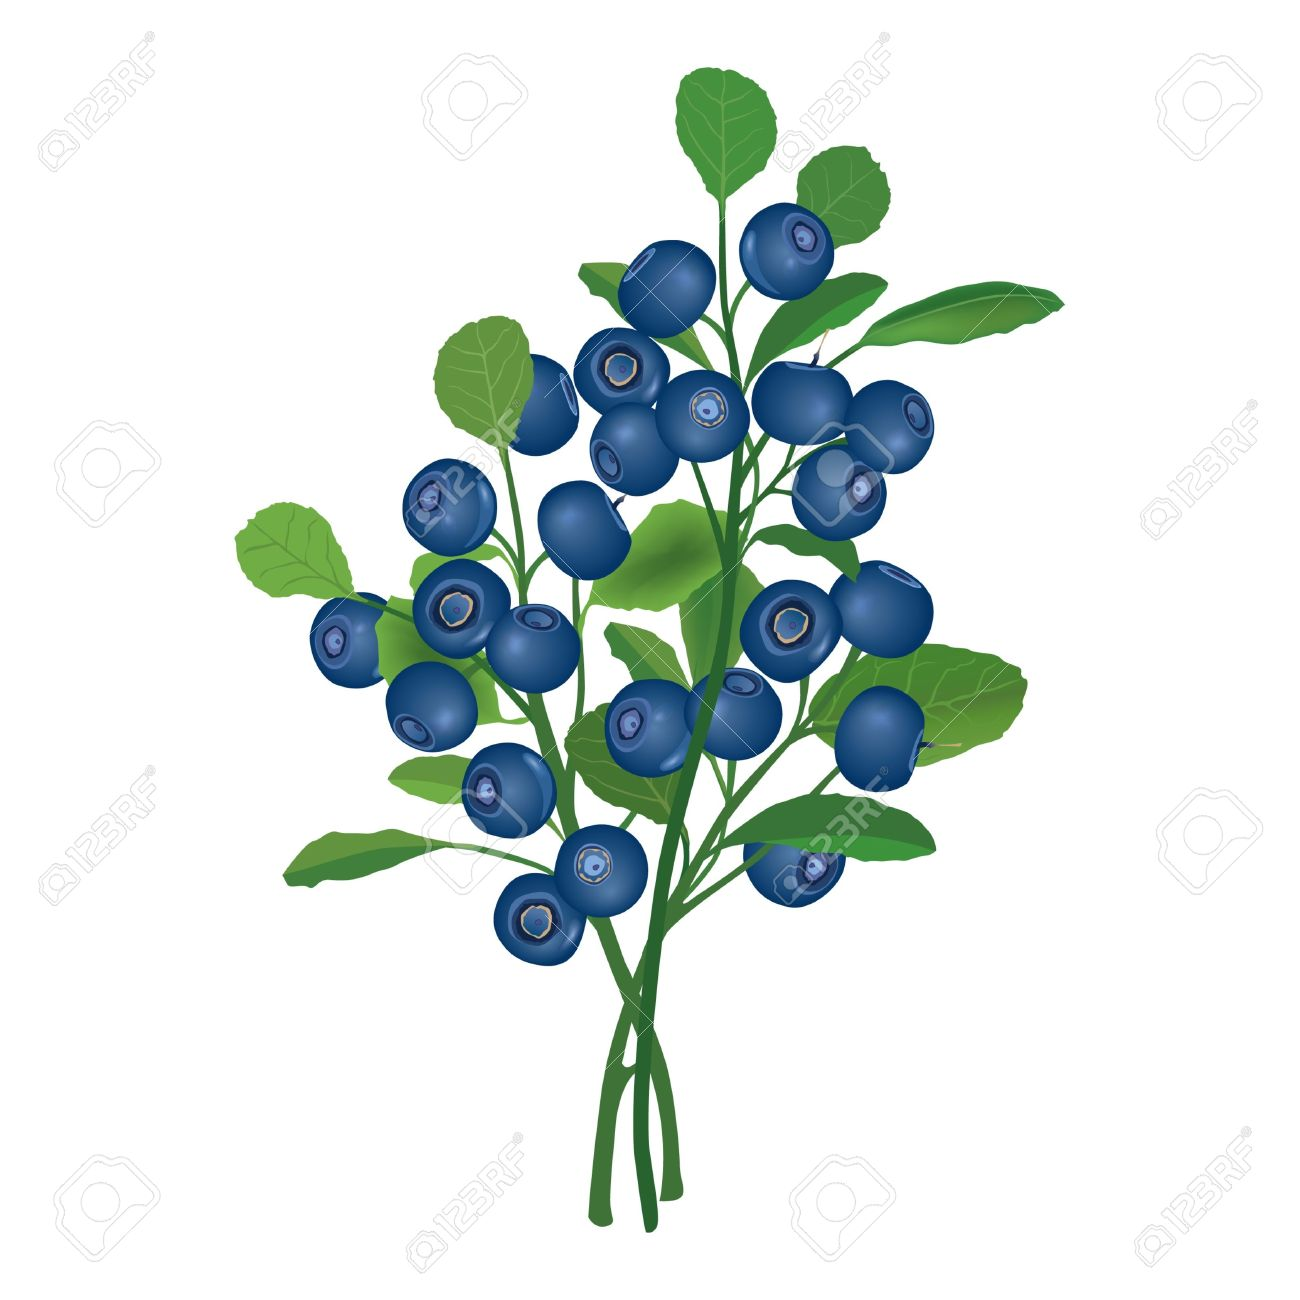 Drawn rose bush single rose Cliparts Berry Clipart Bush Blueberry